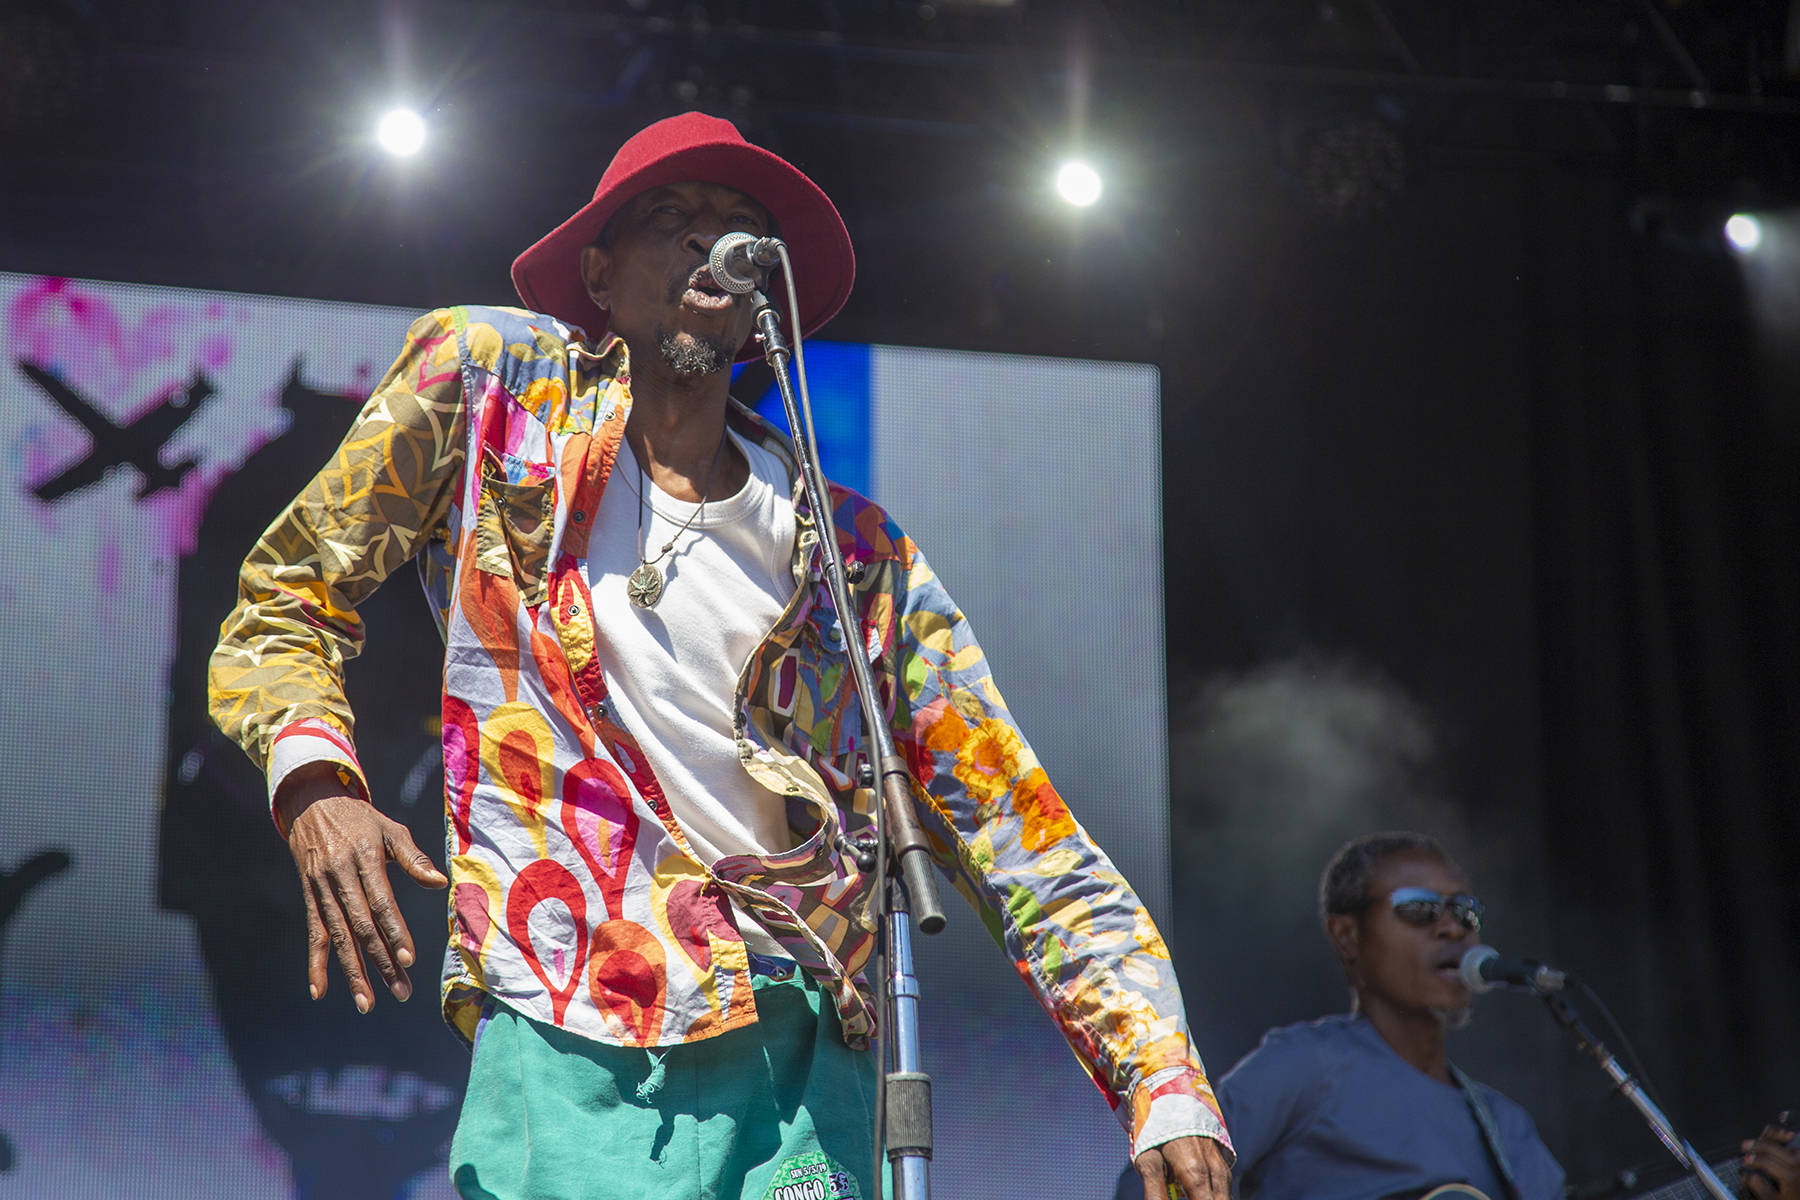 Jupiter Bokondji of Jupiter and Okwess performs at the final day of Outside Lands on Sunday, August 11, 2019. (Ellie Doyen/Special to S.F. Examiner)